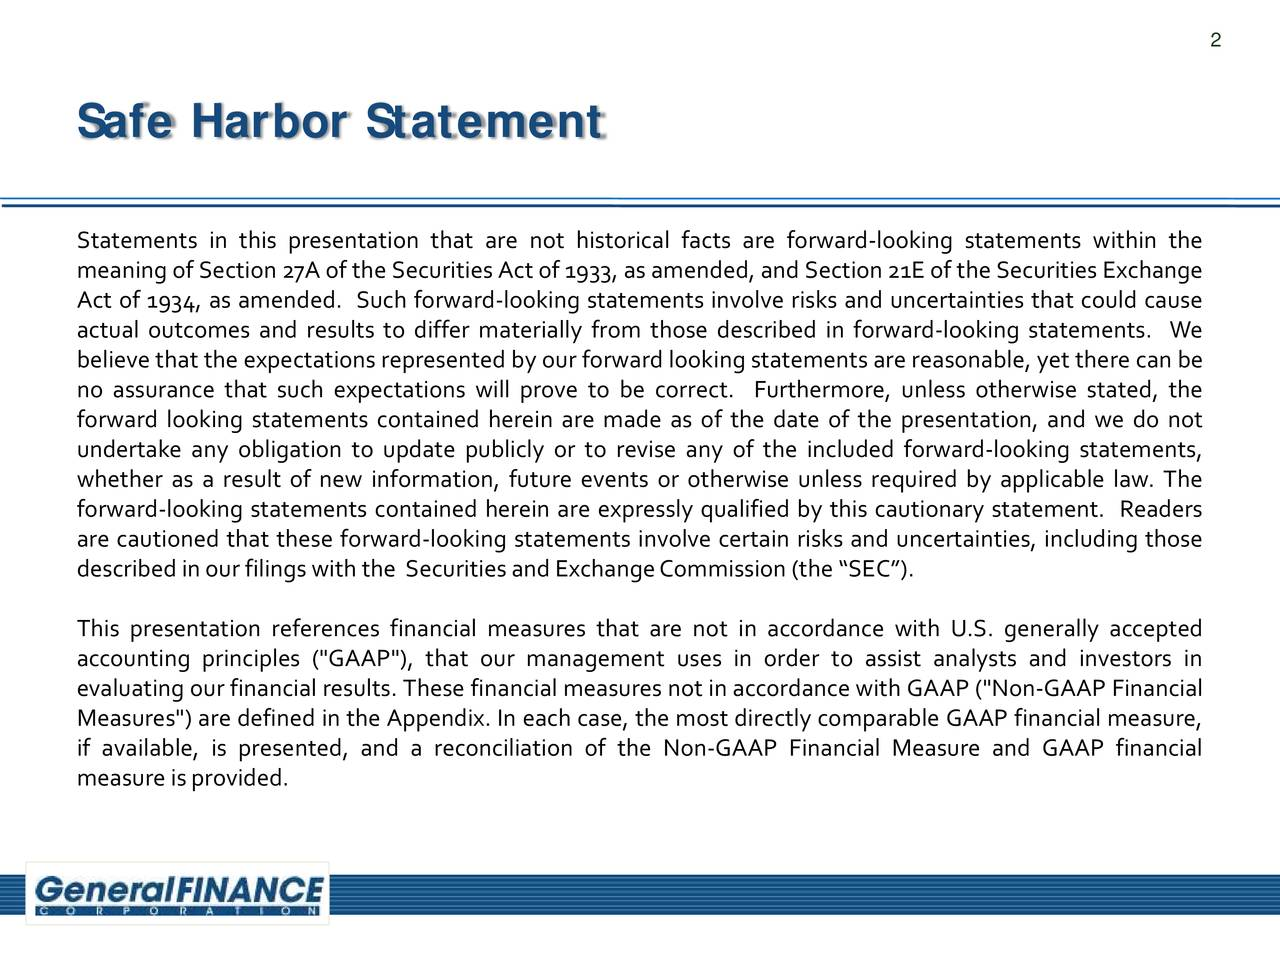 "Safe Harbor Statement Statements in this presentation that are not historical facts are forward-looking statements within the meaningof Section27A of the SecuritiesAct of 1933, as amended,and Section21E of the Securities Exchange Act of 1934, as amended. Such forward-looking statements involve risks and uncertainties that could cause actual outcomes and results to differ materially from those described in forward-looking statements. We believe that the expectationsrepresentedby our forward lookingstatements are reasonable,yet there can be no assurance that such expectations will prove to be correct. Furthermore, unless otherwise stated, the forward looking statements contained herein are made as of the date of the presentation, and we do not undertake any obligation to update publicly or to revise any of the included forward-looking statements, whether as a result of new information, future events or otherwise unless required by applicable law. The forward-looking statements contained herein are expressly qualified by this cautionary statement. Readers are cautioned that these forward-looking statements involve certain risks and uncertainties, including those describedinourfilingswiththe SecuritiesandExchangeCommission(the ""SEC""). This presentation references financial measures that are not in accordance with U.S. generally accepted accounting principles (""GAAP""), that our management uses in order to assist analysts and investors in evaluating our financialresults. These financialmeasures not in accordancewith GAAP (""Non-GAAP Financial Measures"") are defined in the Appendix. In each case, the most directly comparable GAAP financialmeasure, if available, is presented, and a reconciliation of the Non-GAAP Financial Measure and GAAP financial measureisprovided."